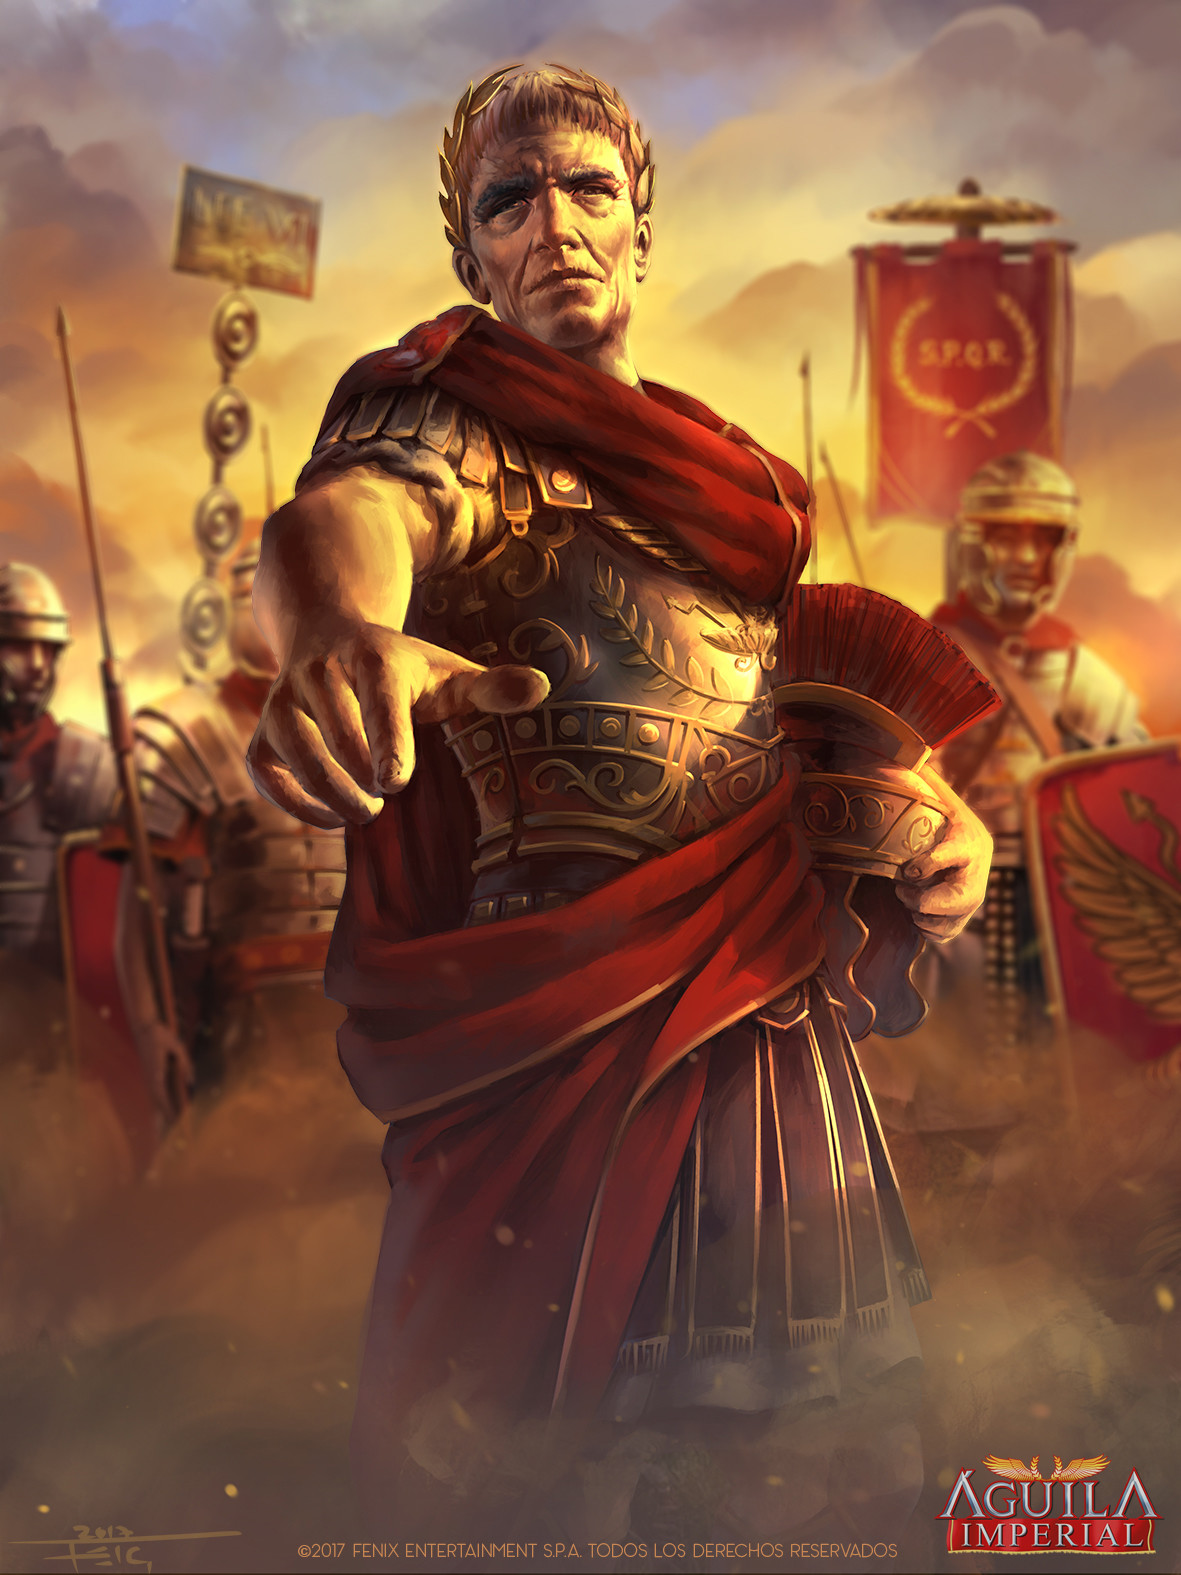 the real julius ceasar vs the In william shakespeare's play, julius caesar, there is a major difference between two of the characters, brutus and mark antony brutus was.